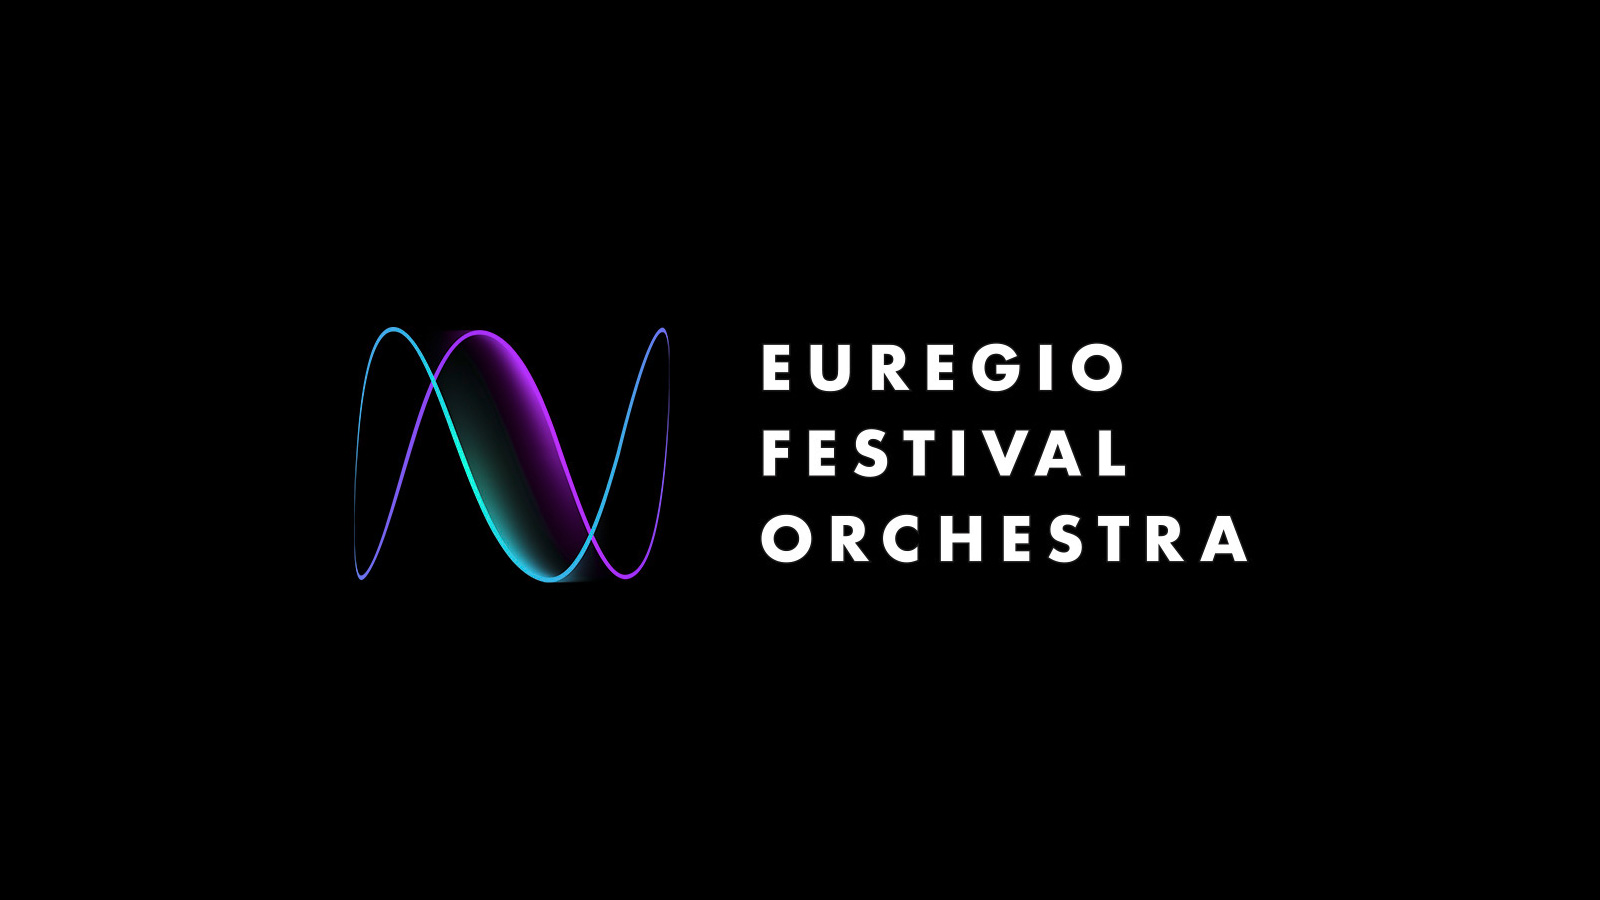 Corporate design for the Euregio Festival Orchestra